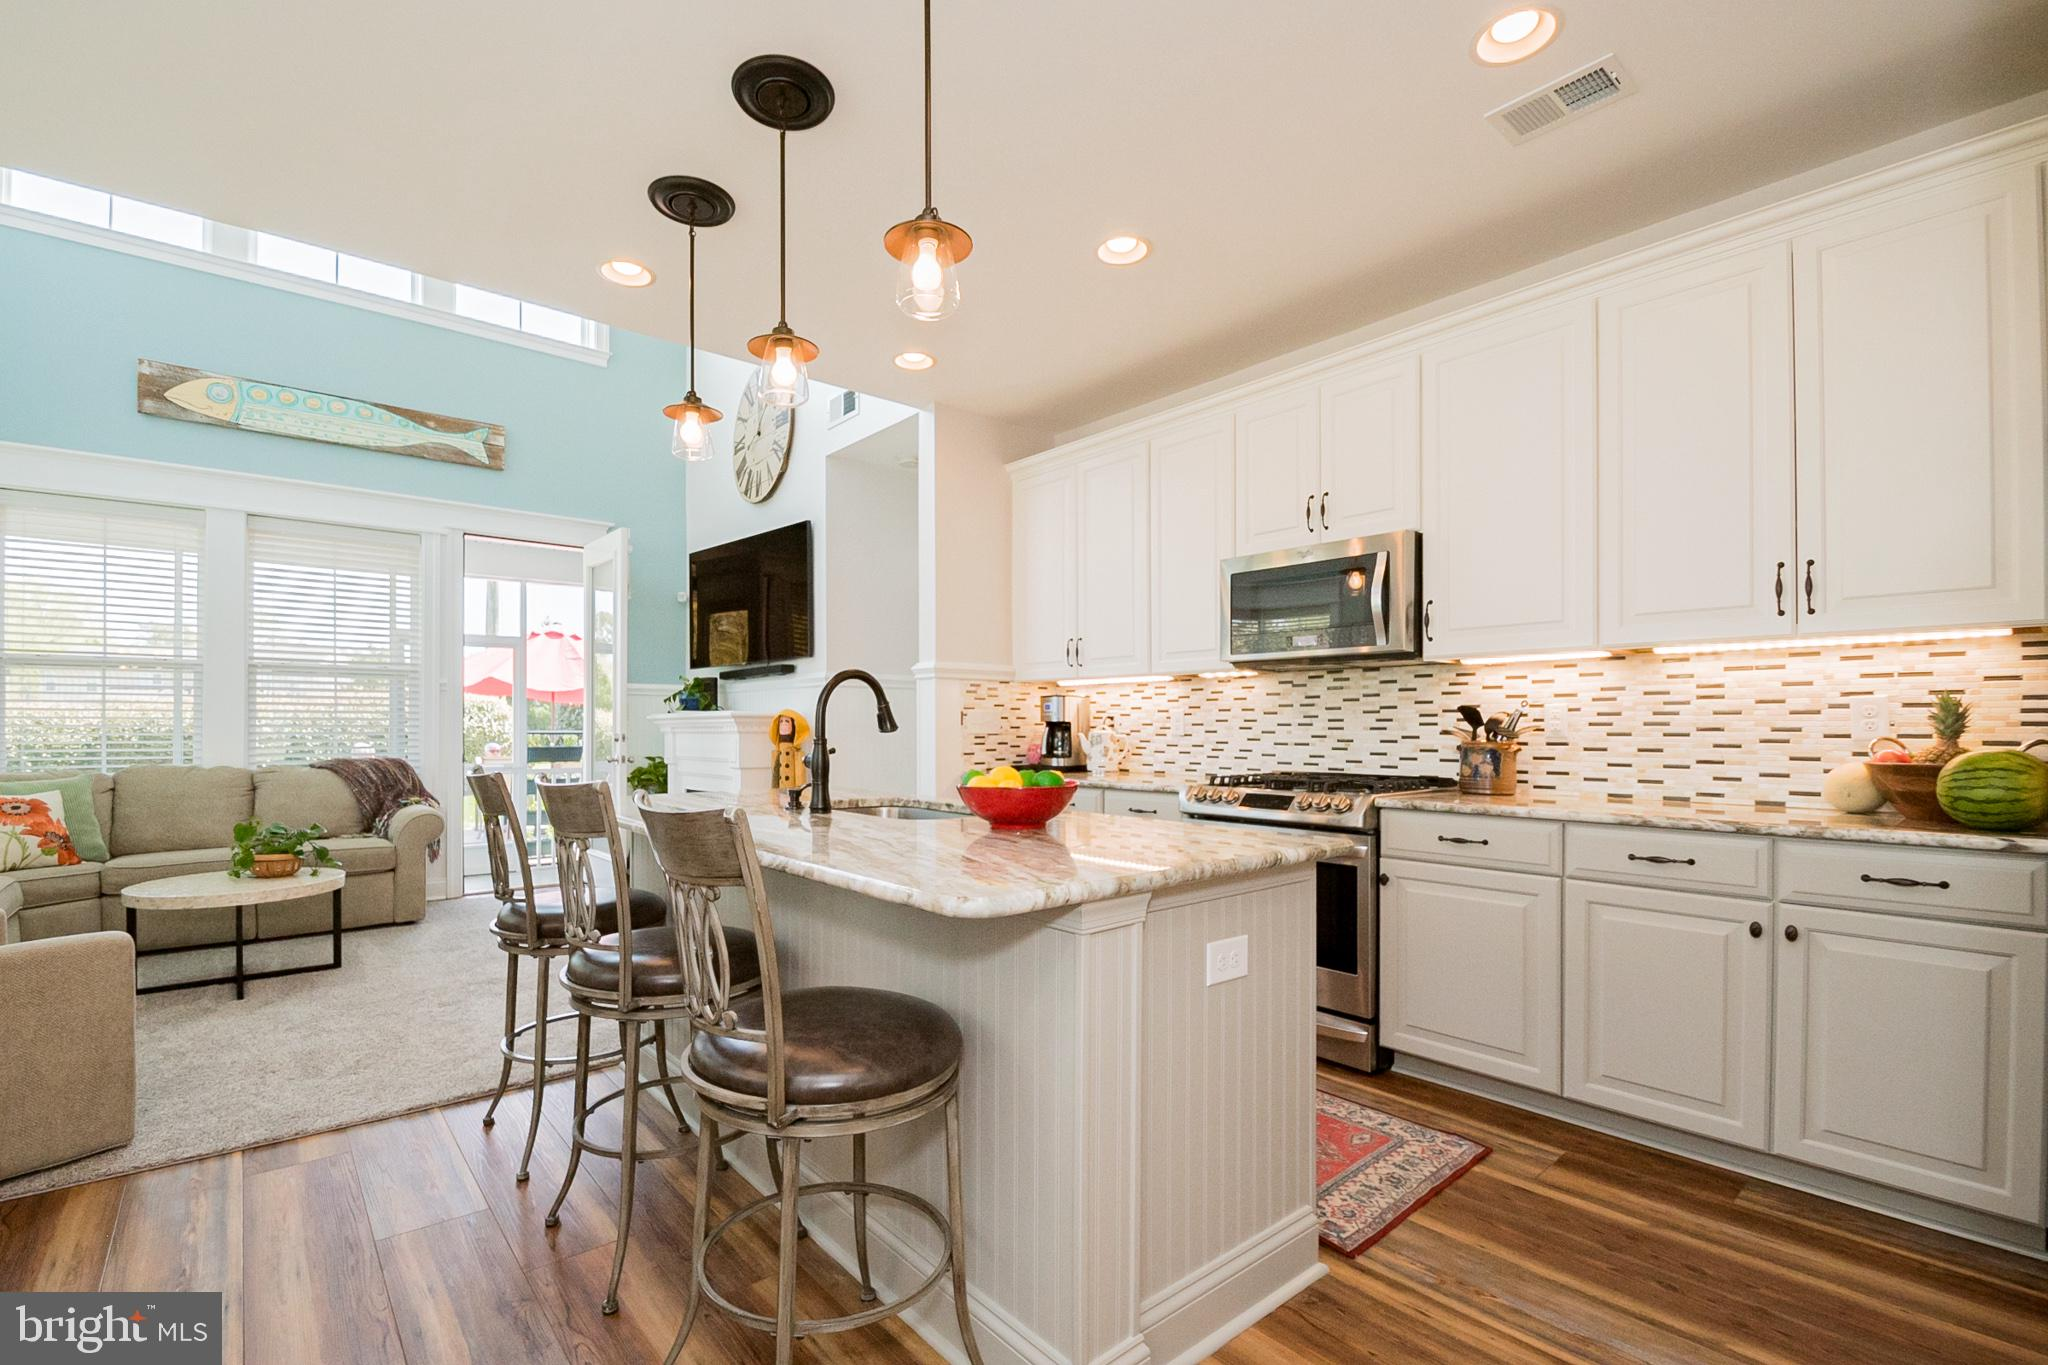 """Better than Brand New! This incredible Coastal Style End Unit Townhome has improvements and fine finishes not even offered as builder upgrades. Sellers spared no expense in updates to flooring, countertops, appliances, HVAC, and hardscaping with outdoor fire pit. Enjoy wainscoting throughout, shiplap accent wall, window/door trim work, closet built-ins, remote motorized window shades, beautiful custom shower in Owner's Bath, Epoxy Garage Floor and so much more.  Kitchen features 42"""" cabinets, granite countertops, stainless steel appliances including gas range, backsplash and under-cabinet lighting. Updated HVAC to Dual Zone Bryant 2 stage 96% Energy Efficient Heat and 2 stage 16 SEER A/C plus added U/V Light for cleaner air circulation. Enjoy resort amenities at Bishop's Landing including large 10,000 sqft state of the art community clubhouse with large fitness center, multiple community pools (Including Olympic-Size swimming pool), tennis/pickleball courts, walking/jogging paths/trails, dog park, community fishing ponds, and community beach shuttle. This home is an absolute Must See!"""